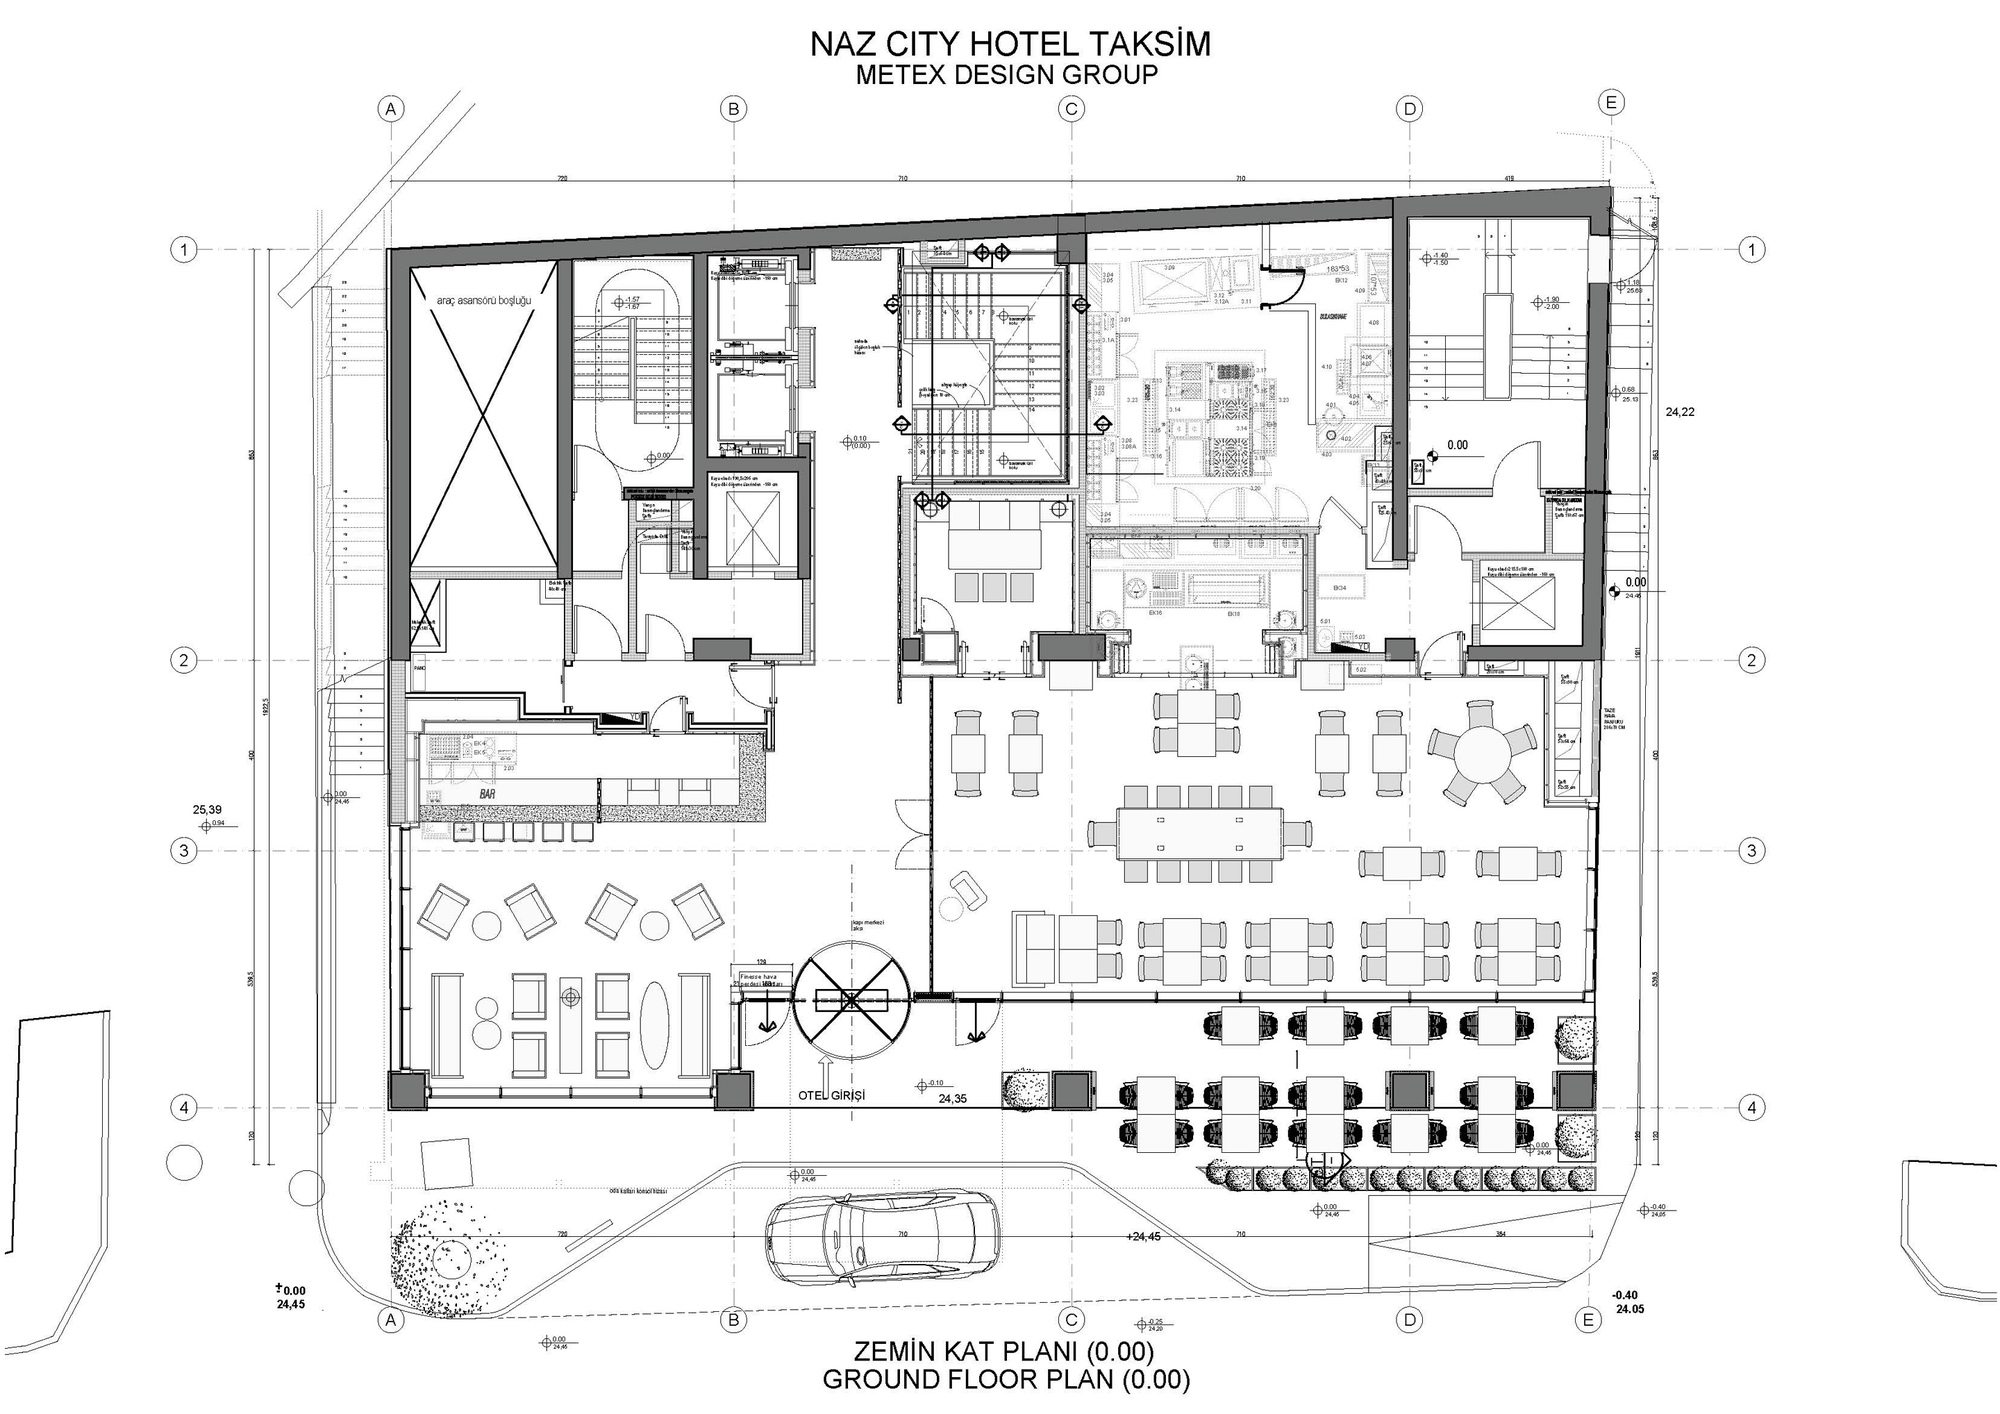 Gallery of naz city hotel taksim metex design group 41 for Hotel plan design